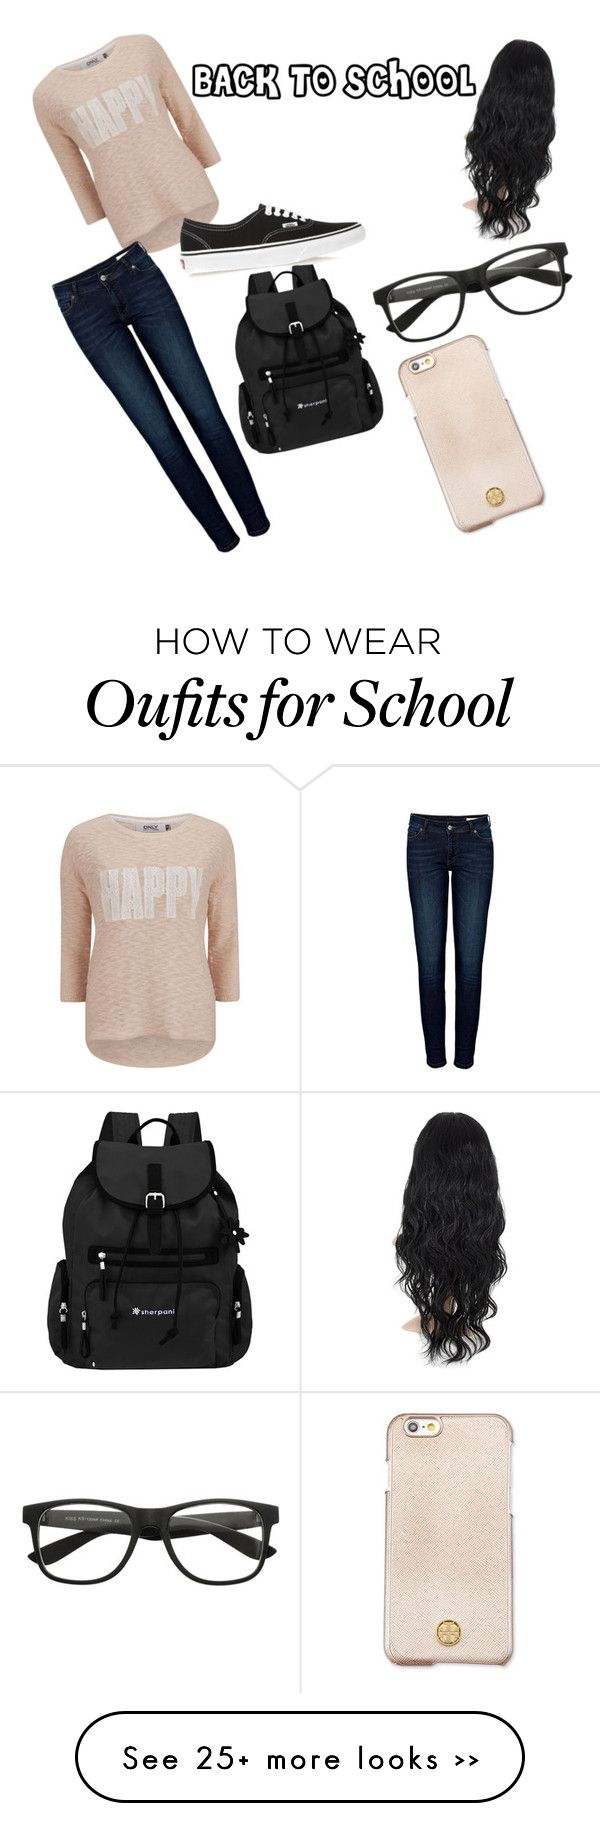 """BACK TO SCHOOL"" by ivillicanamorales on Polyvore"